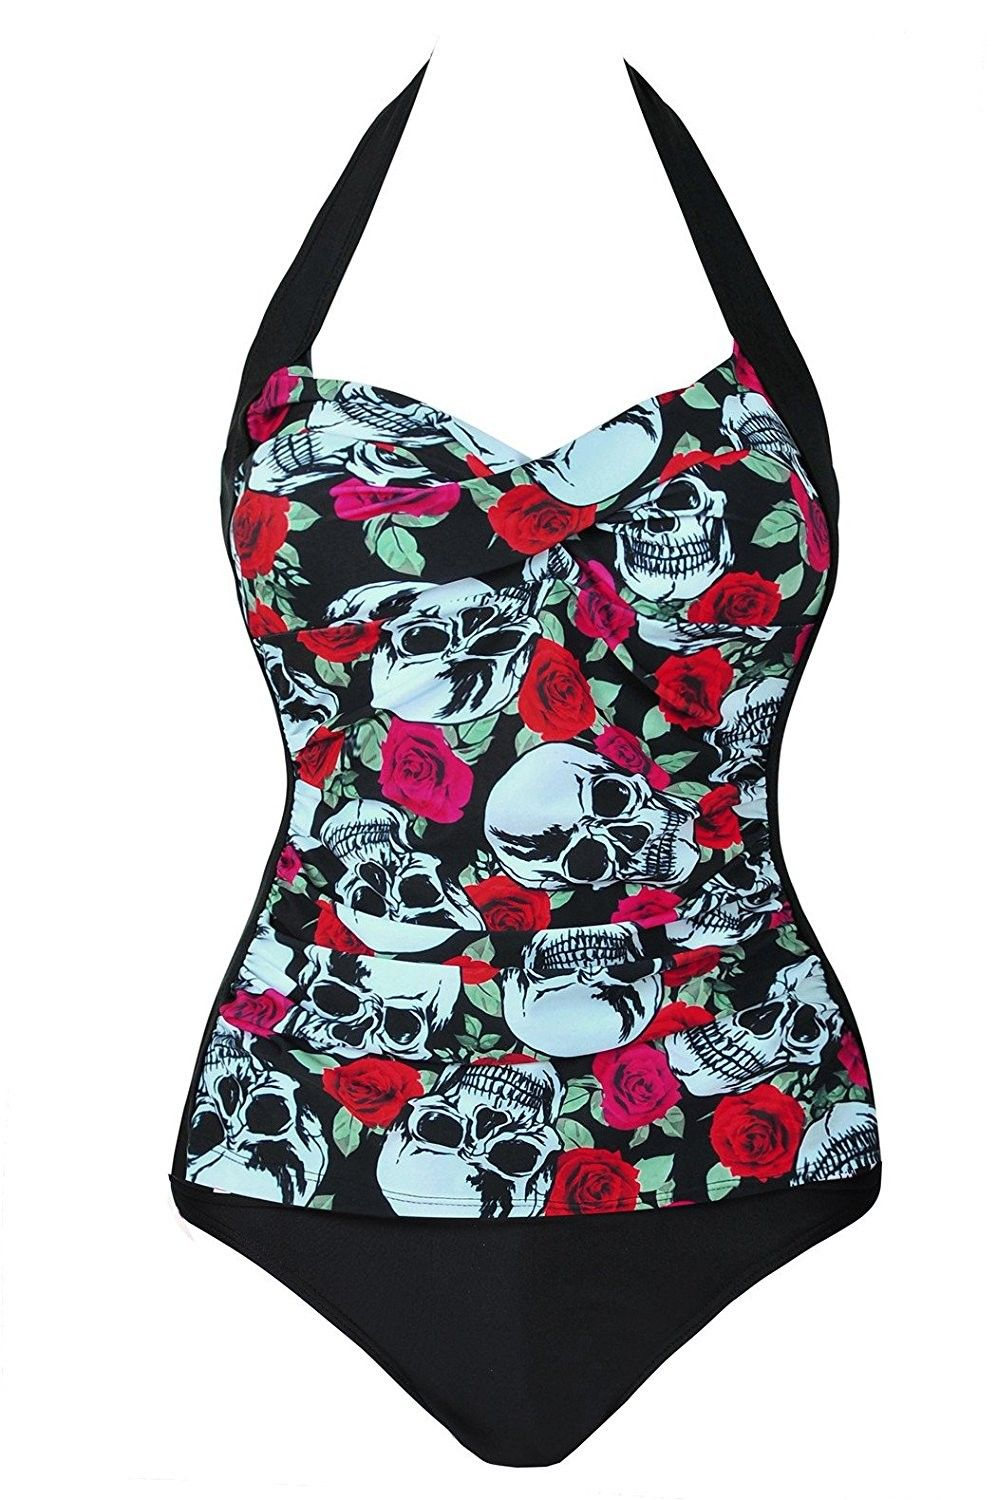 276d3cfc640 Womens Retro Skull Monokinis One Piece Ruched Swimsuit - Red - CX17Y4A4TY6,Women's  Clothing, Swimsuits & Cover Ups, Bikinis, Sets #women #clothing #fashion ...